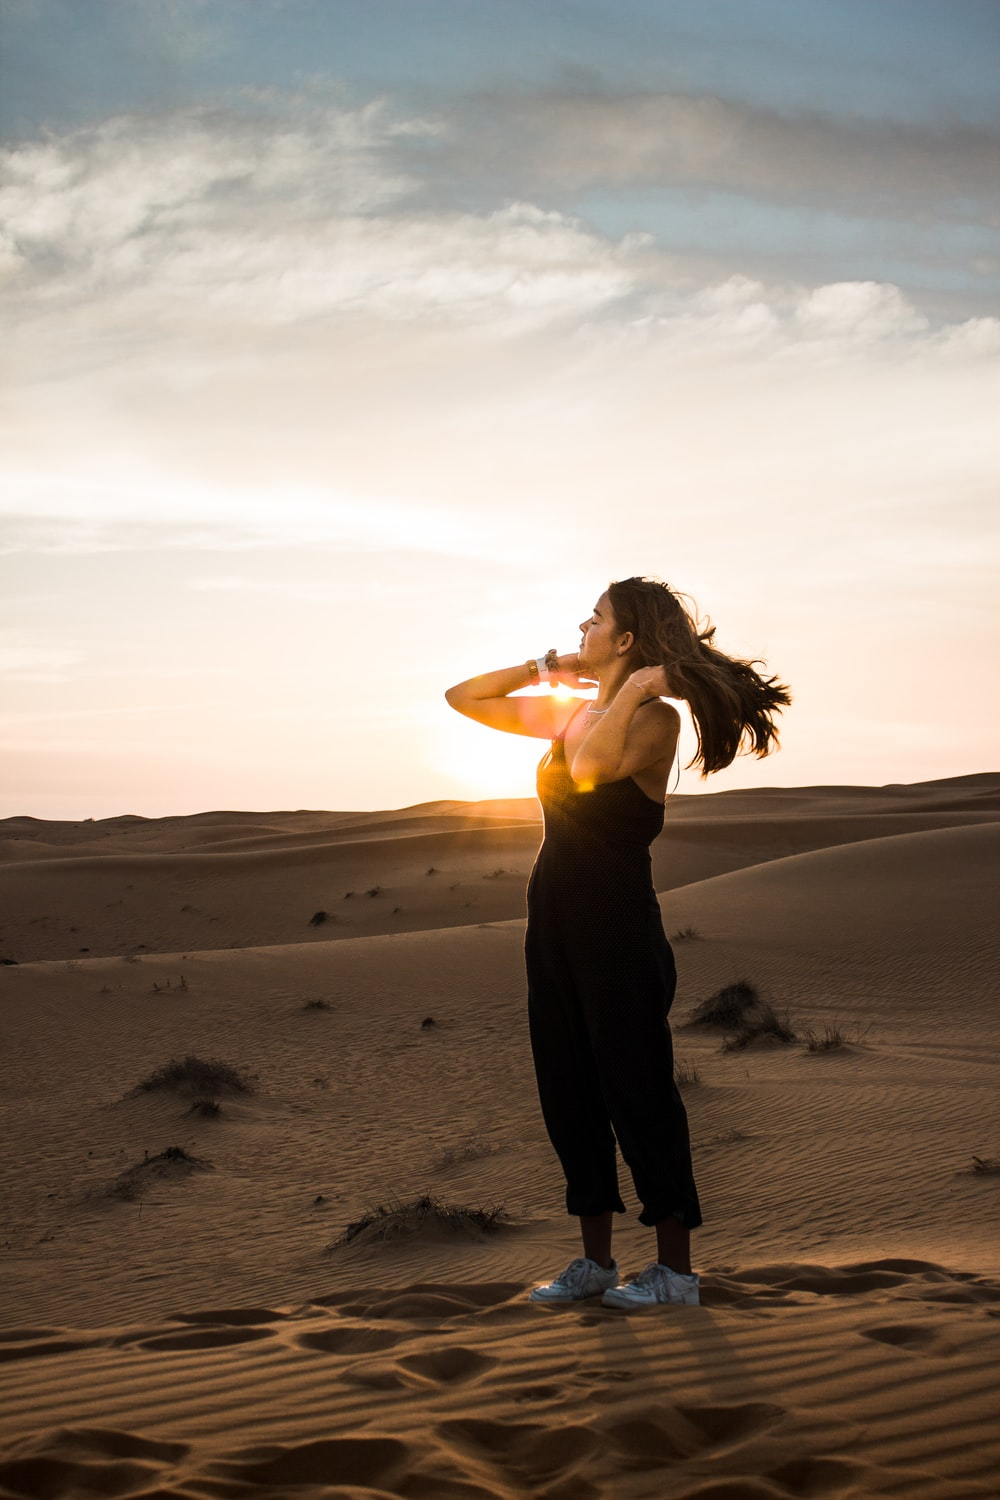 woman comb her hair standing on sand during daytime